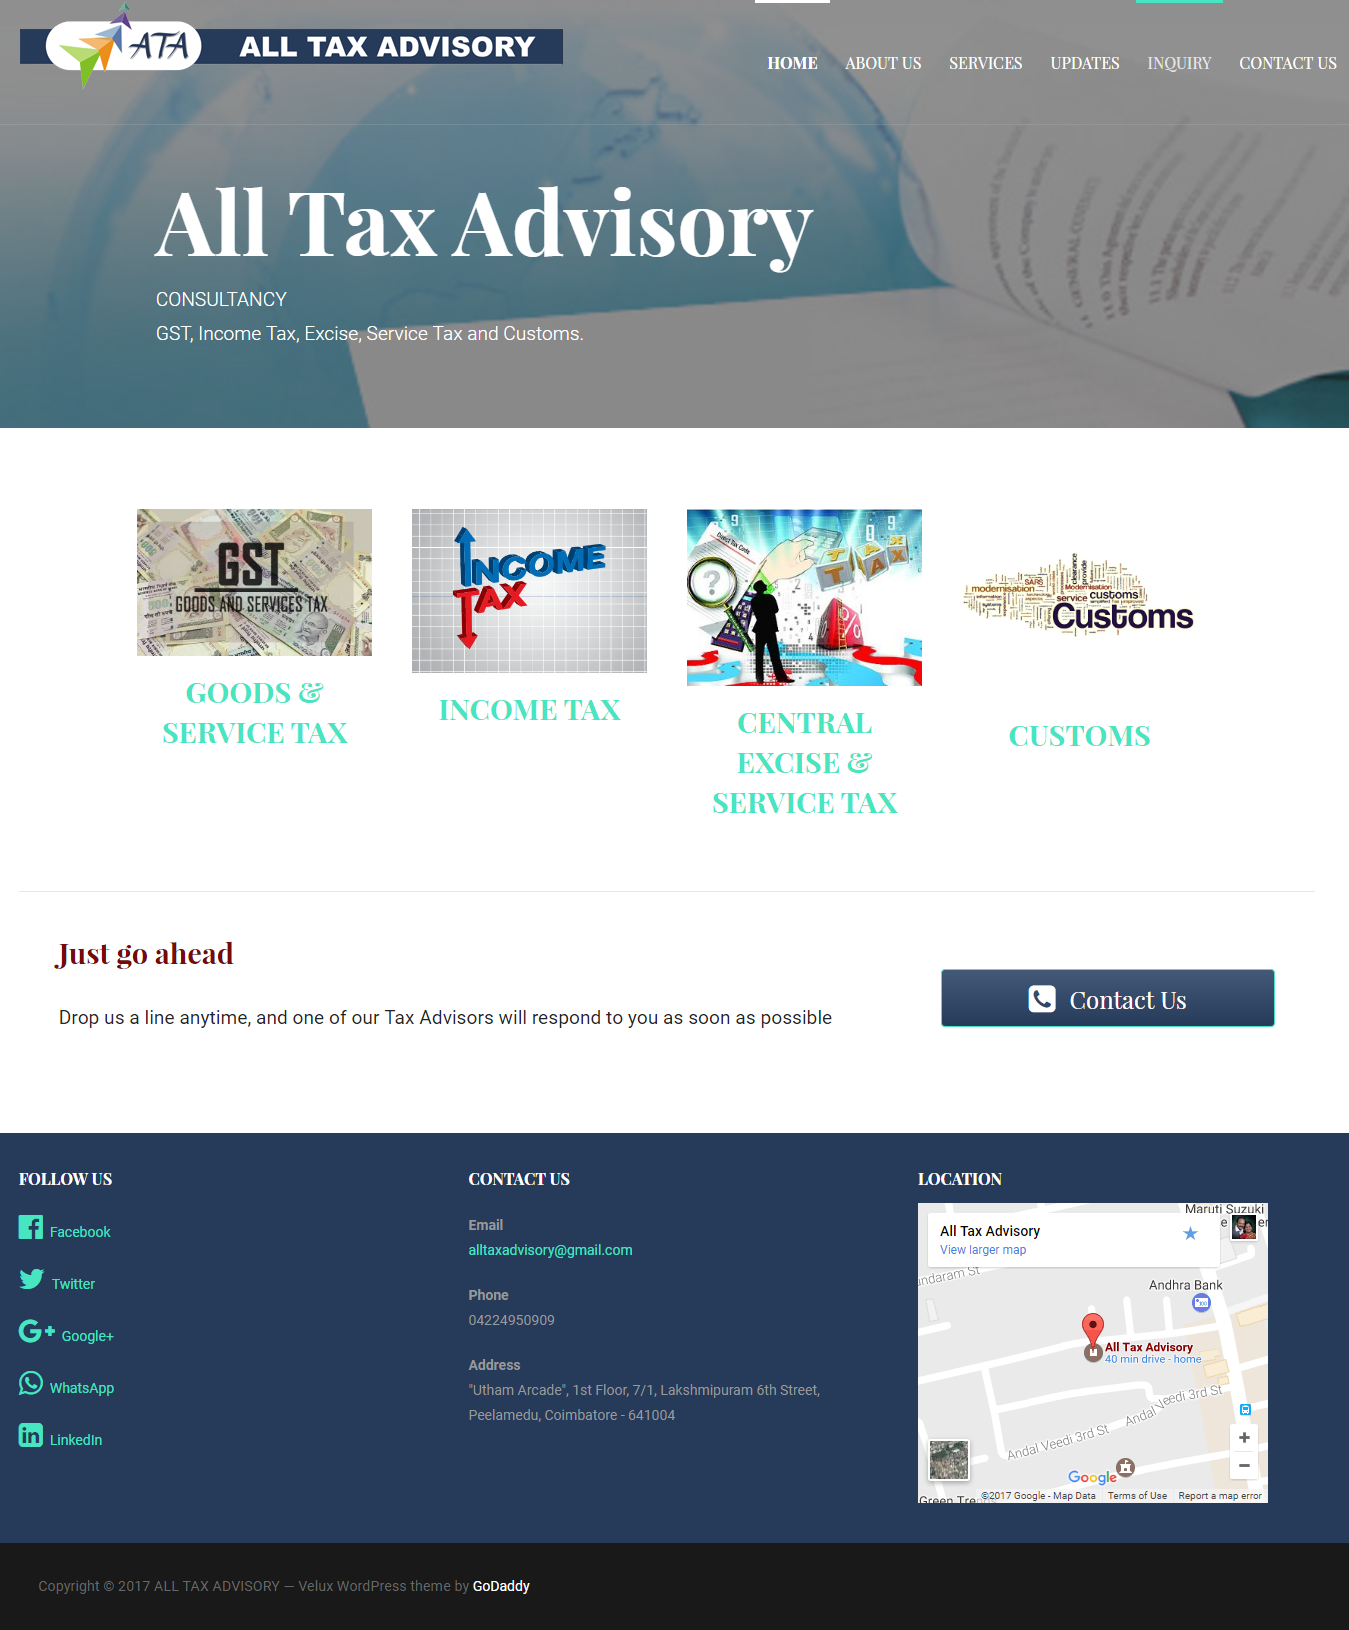 ALL TAX ADVISORY